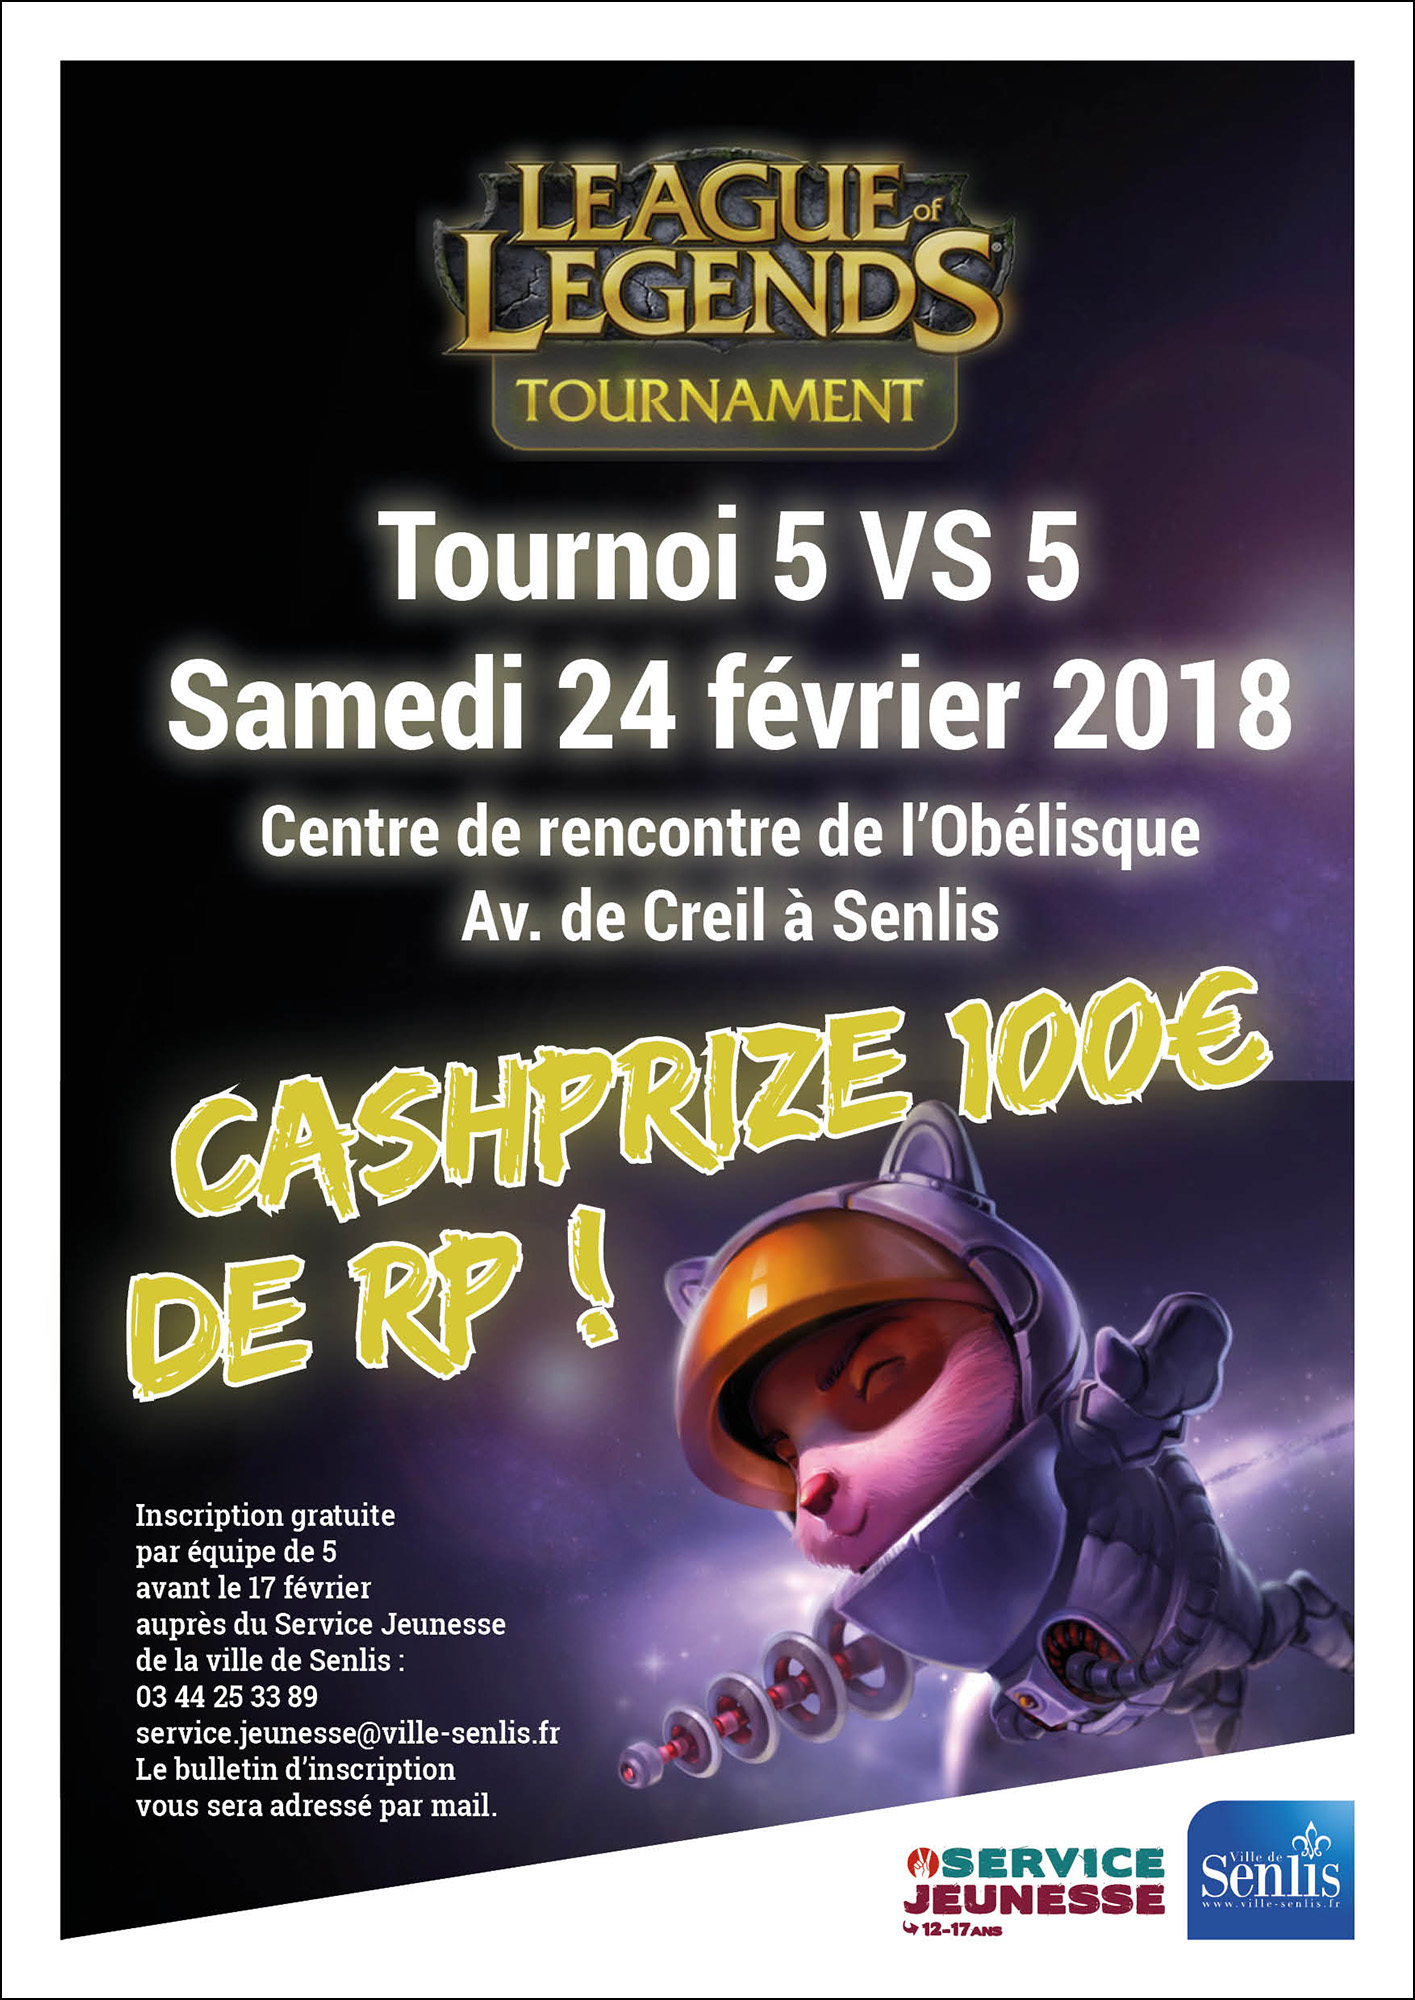 Tournoi - LEAGUE OF LEGENDS - AFFICHE